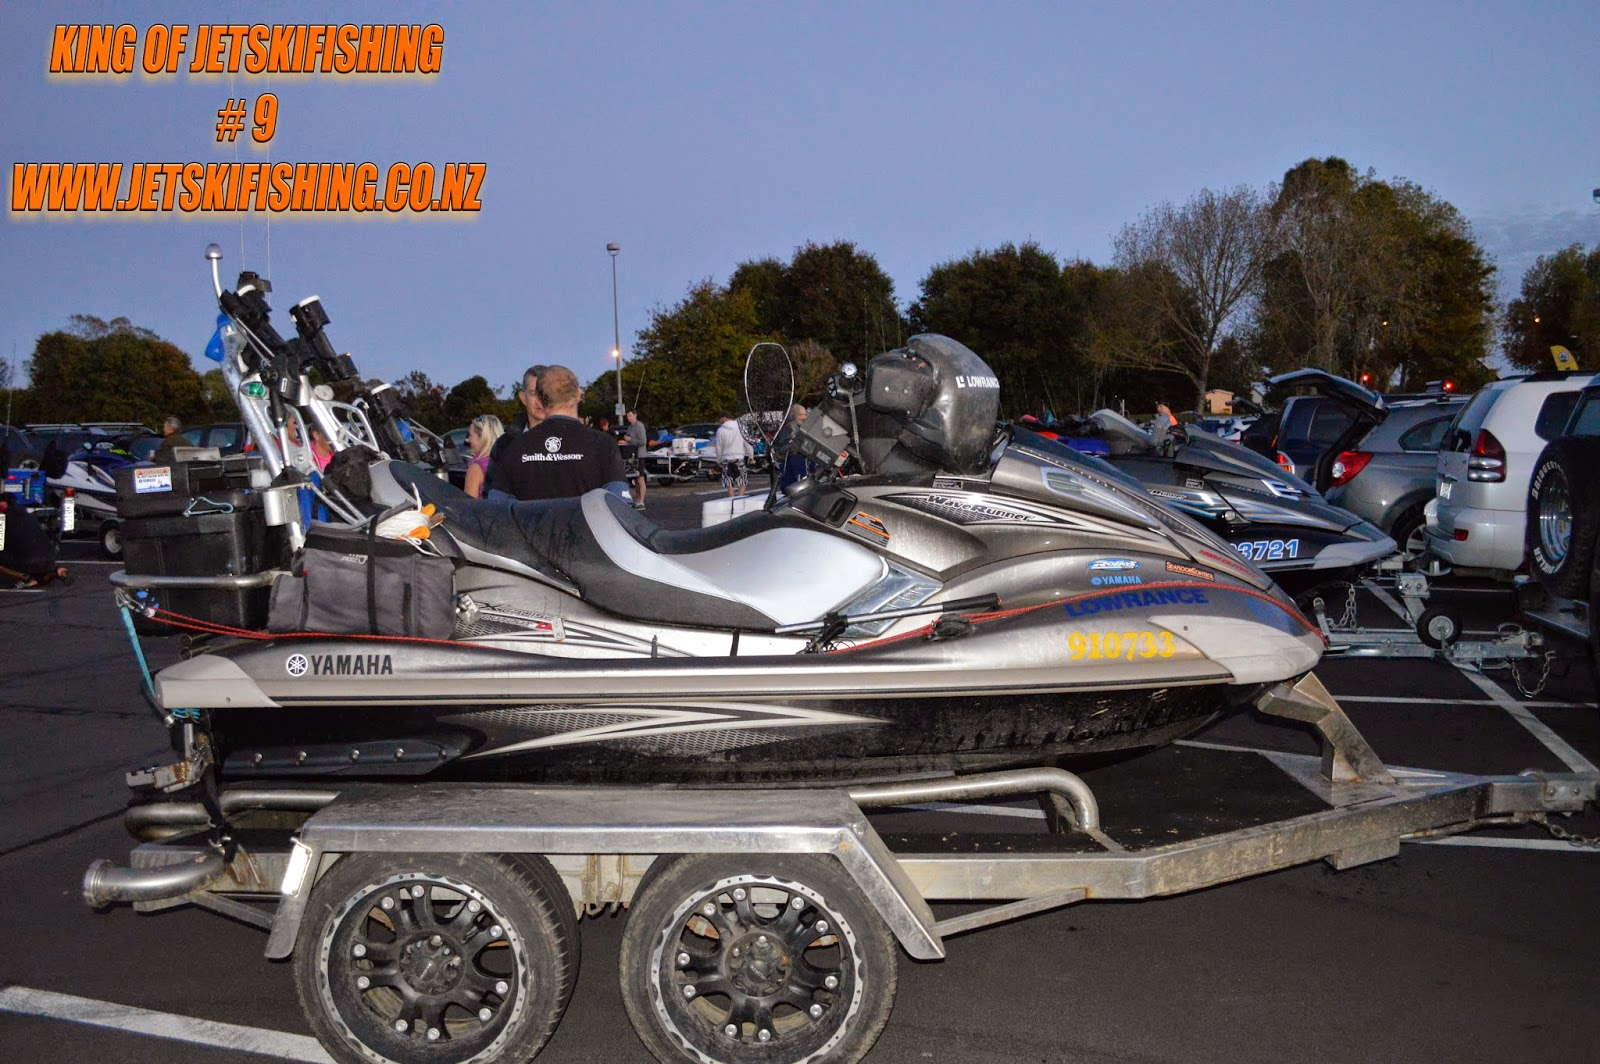 Jet ski fishing blog april 2014 for Best jet ski for fishing